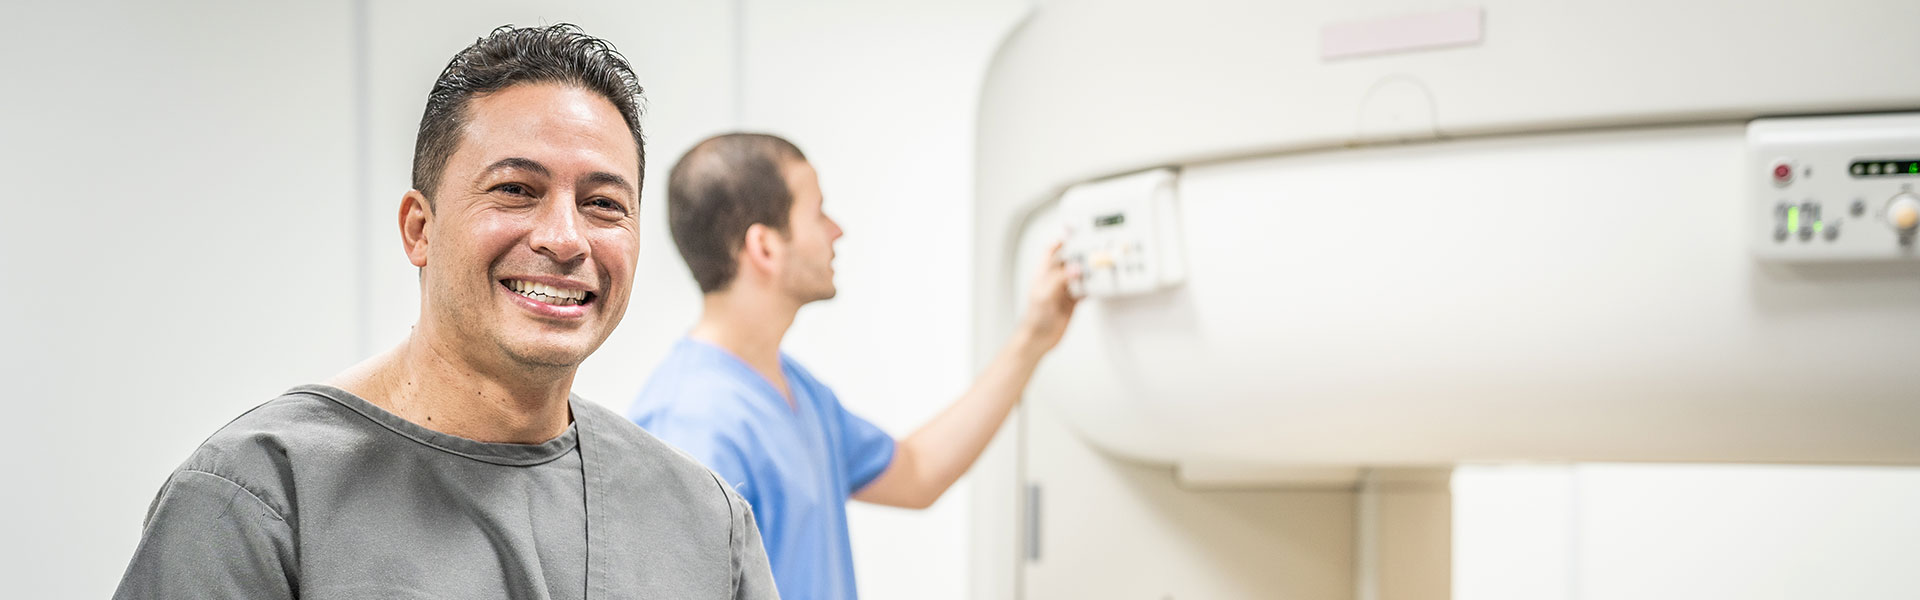 open mri imaging services